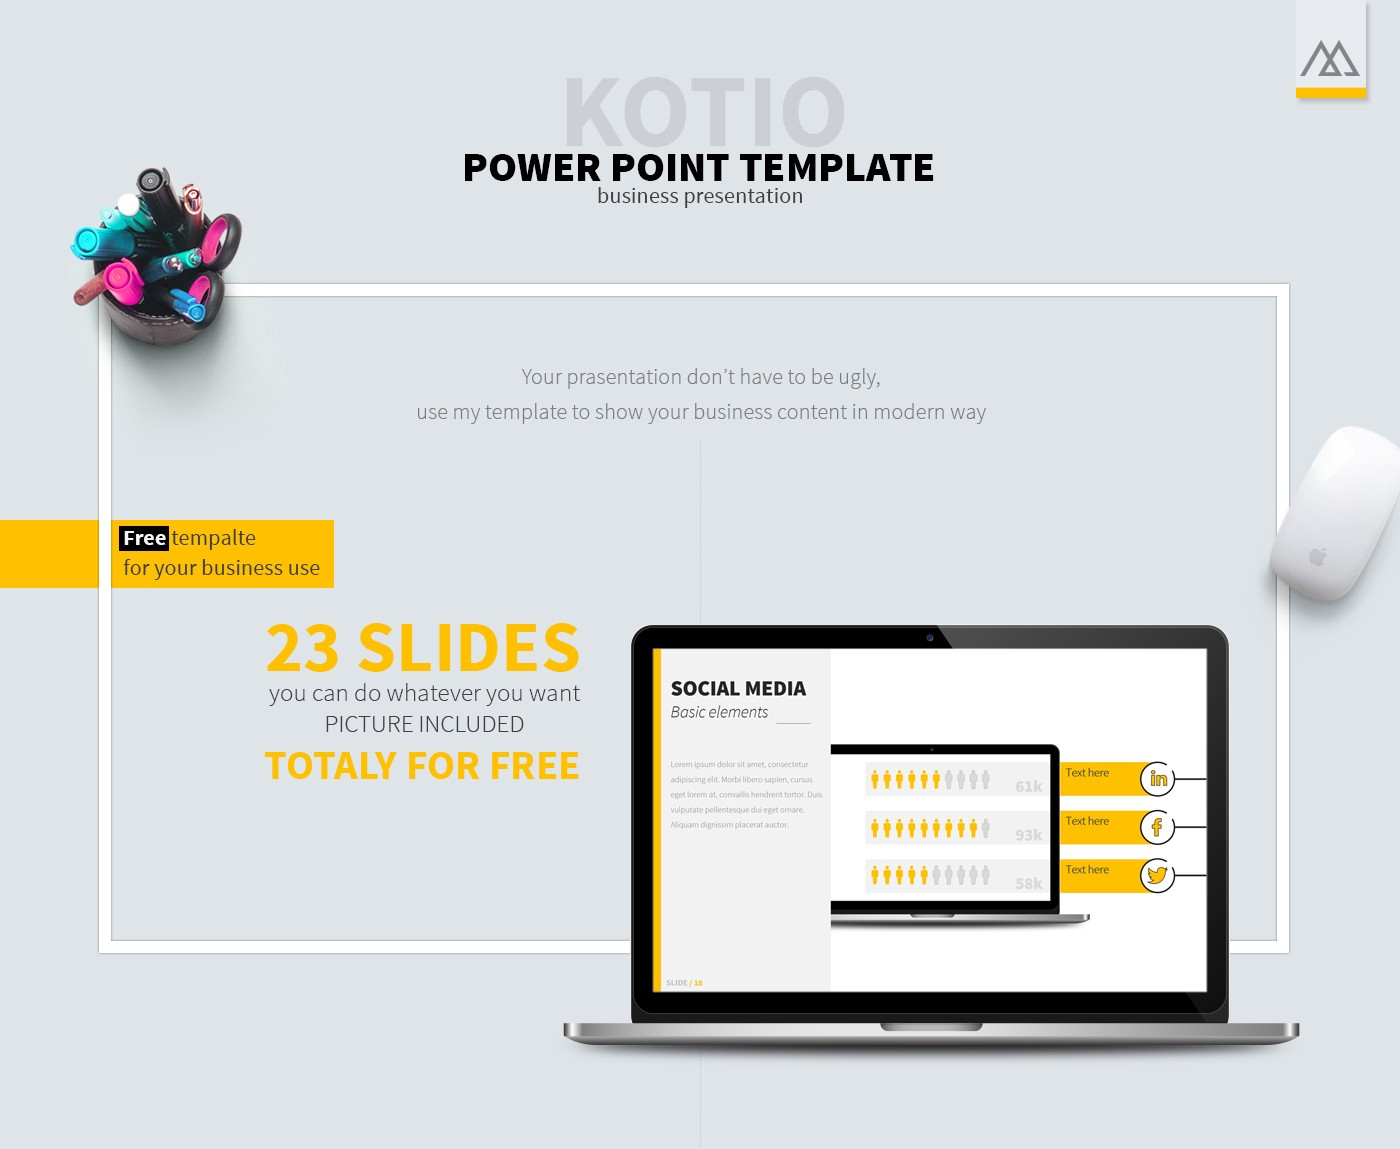 40 free cool powerpoint templates for presentations you can customize every slide to fit your presentation and its ready to use photos are easy to access therefore no time wasted accmission Images